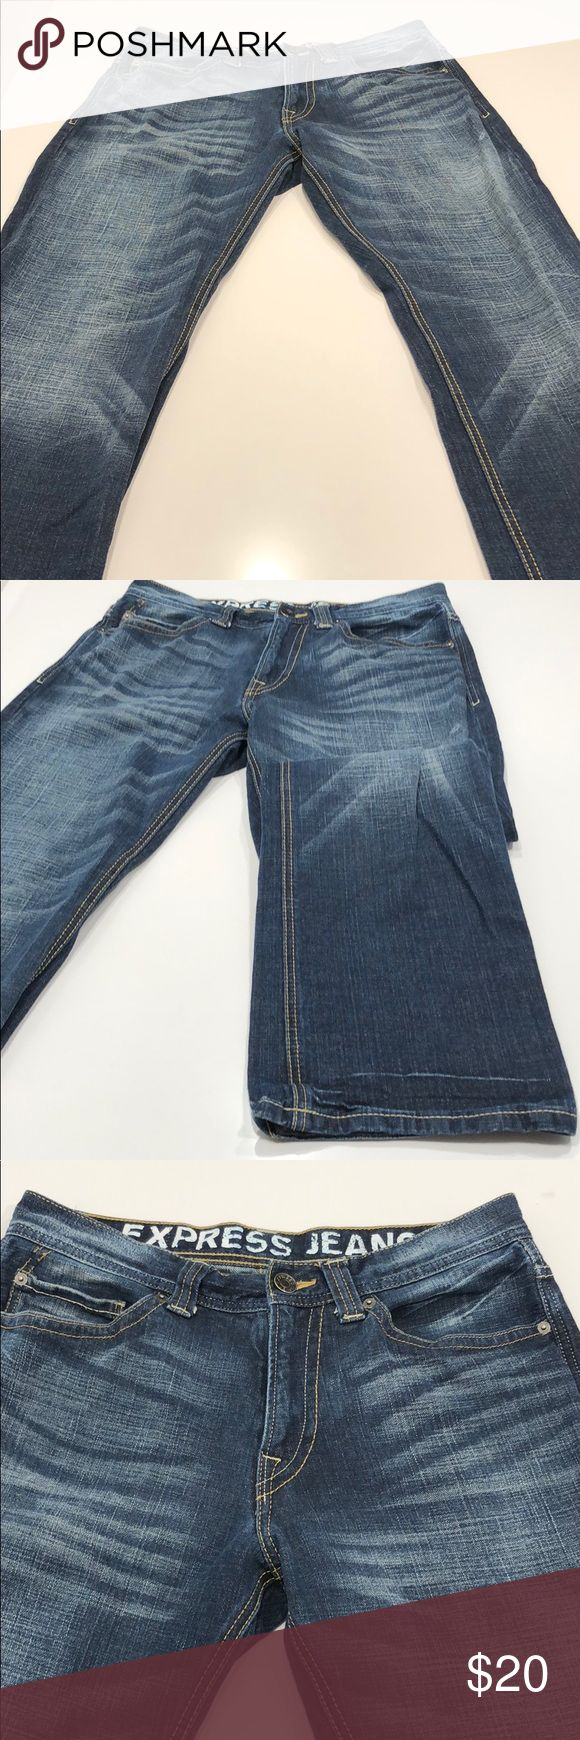 👖Express Men jeans 31x32. Like new . 👖 Basically new. 31x32 express men's jeans Express Jeans Bootcut